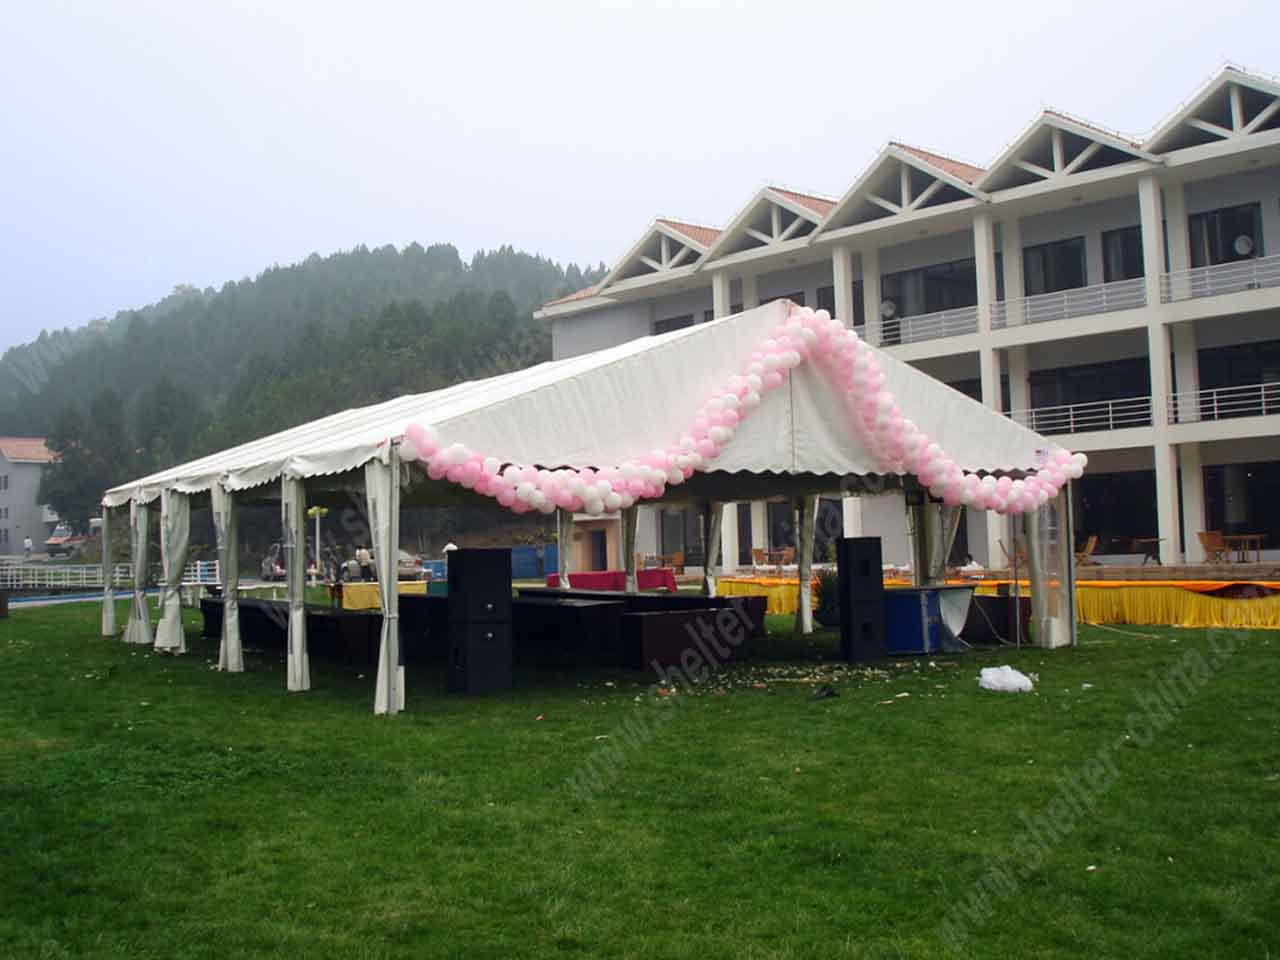 Outdoor Portable Shade Wedding Tent for Sale. Original size is 1280 × 960 pixels & Outdoor Portable Shade Wedding Tent for Sale | Shelter Structures